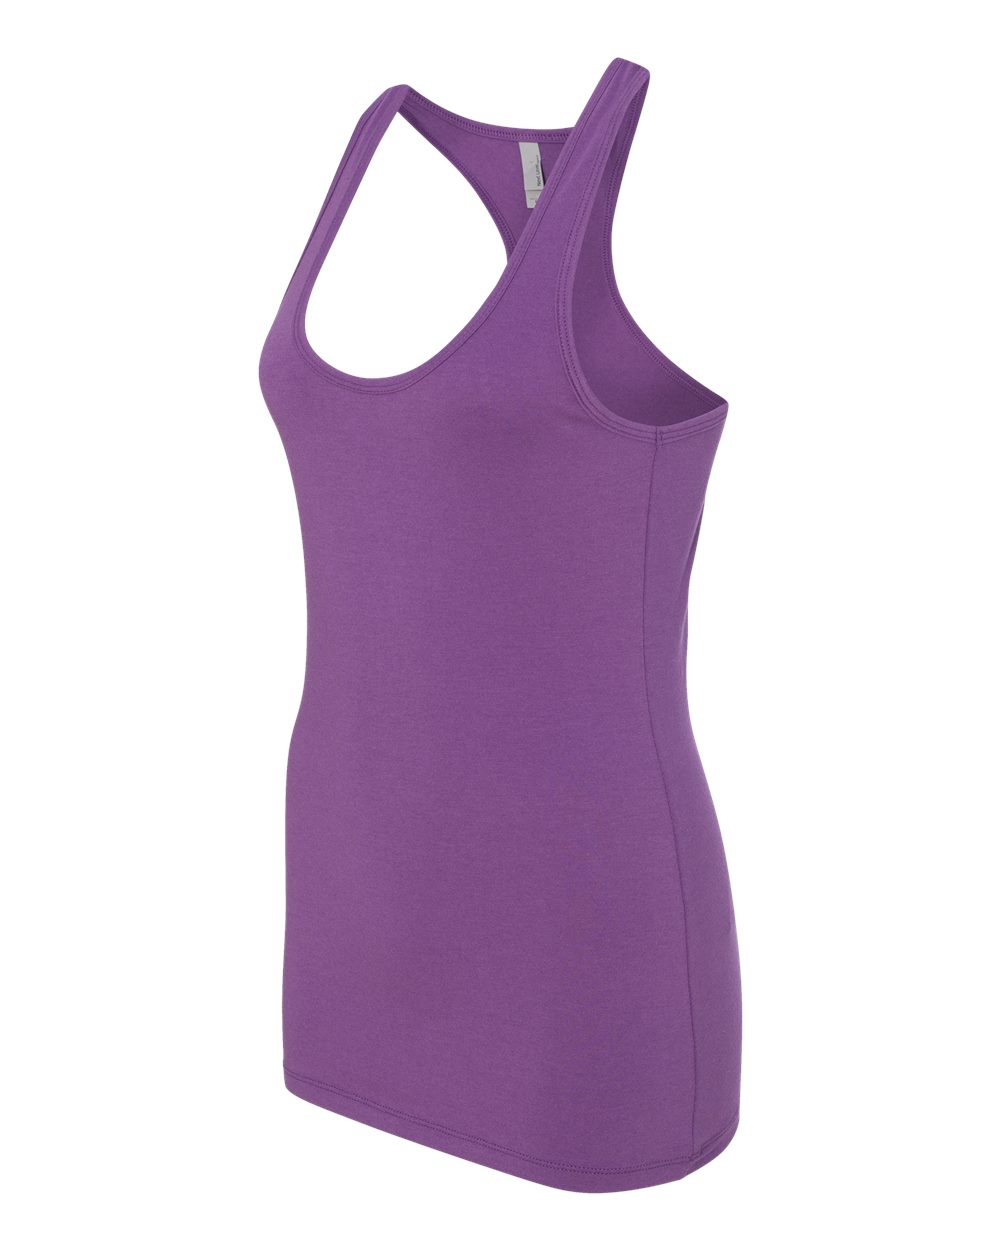 f7e9fb55 Next Level 6633 - Women's The Jersey Racerback Tank - Friendly Arctic  Printing